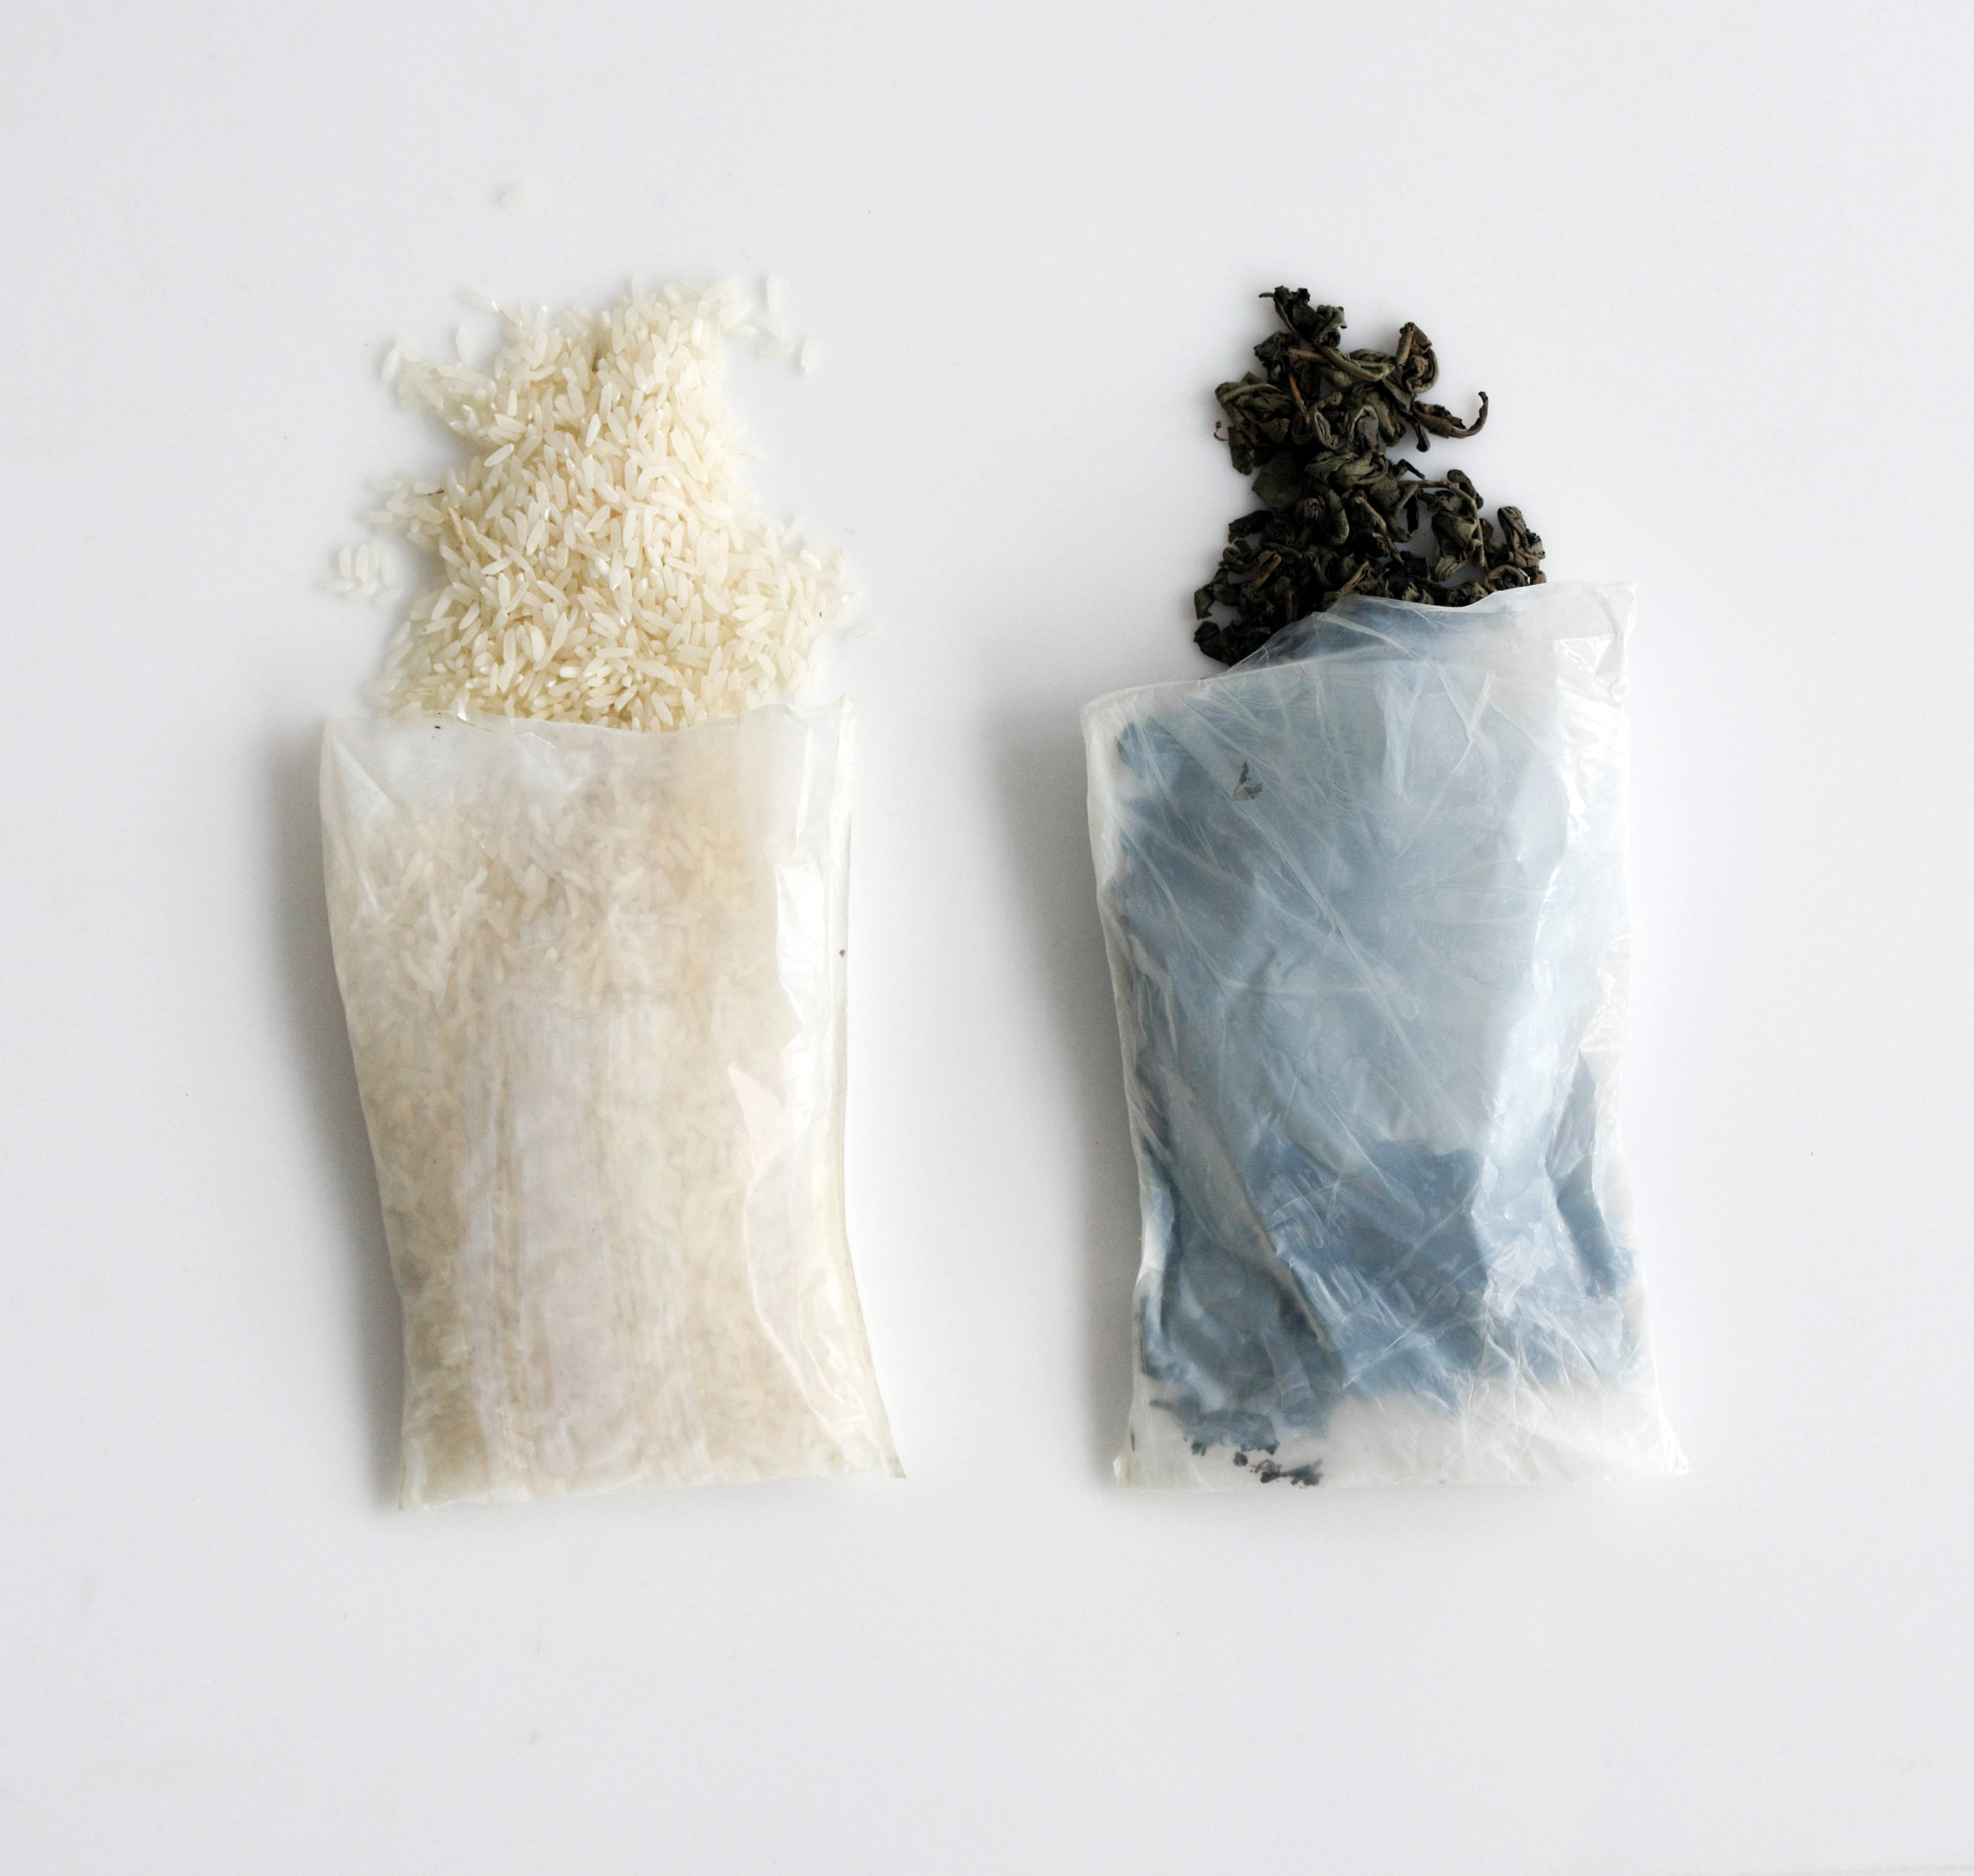 Bags you won't feel bad tossing. Image courtesy of MakeGrowLab